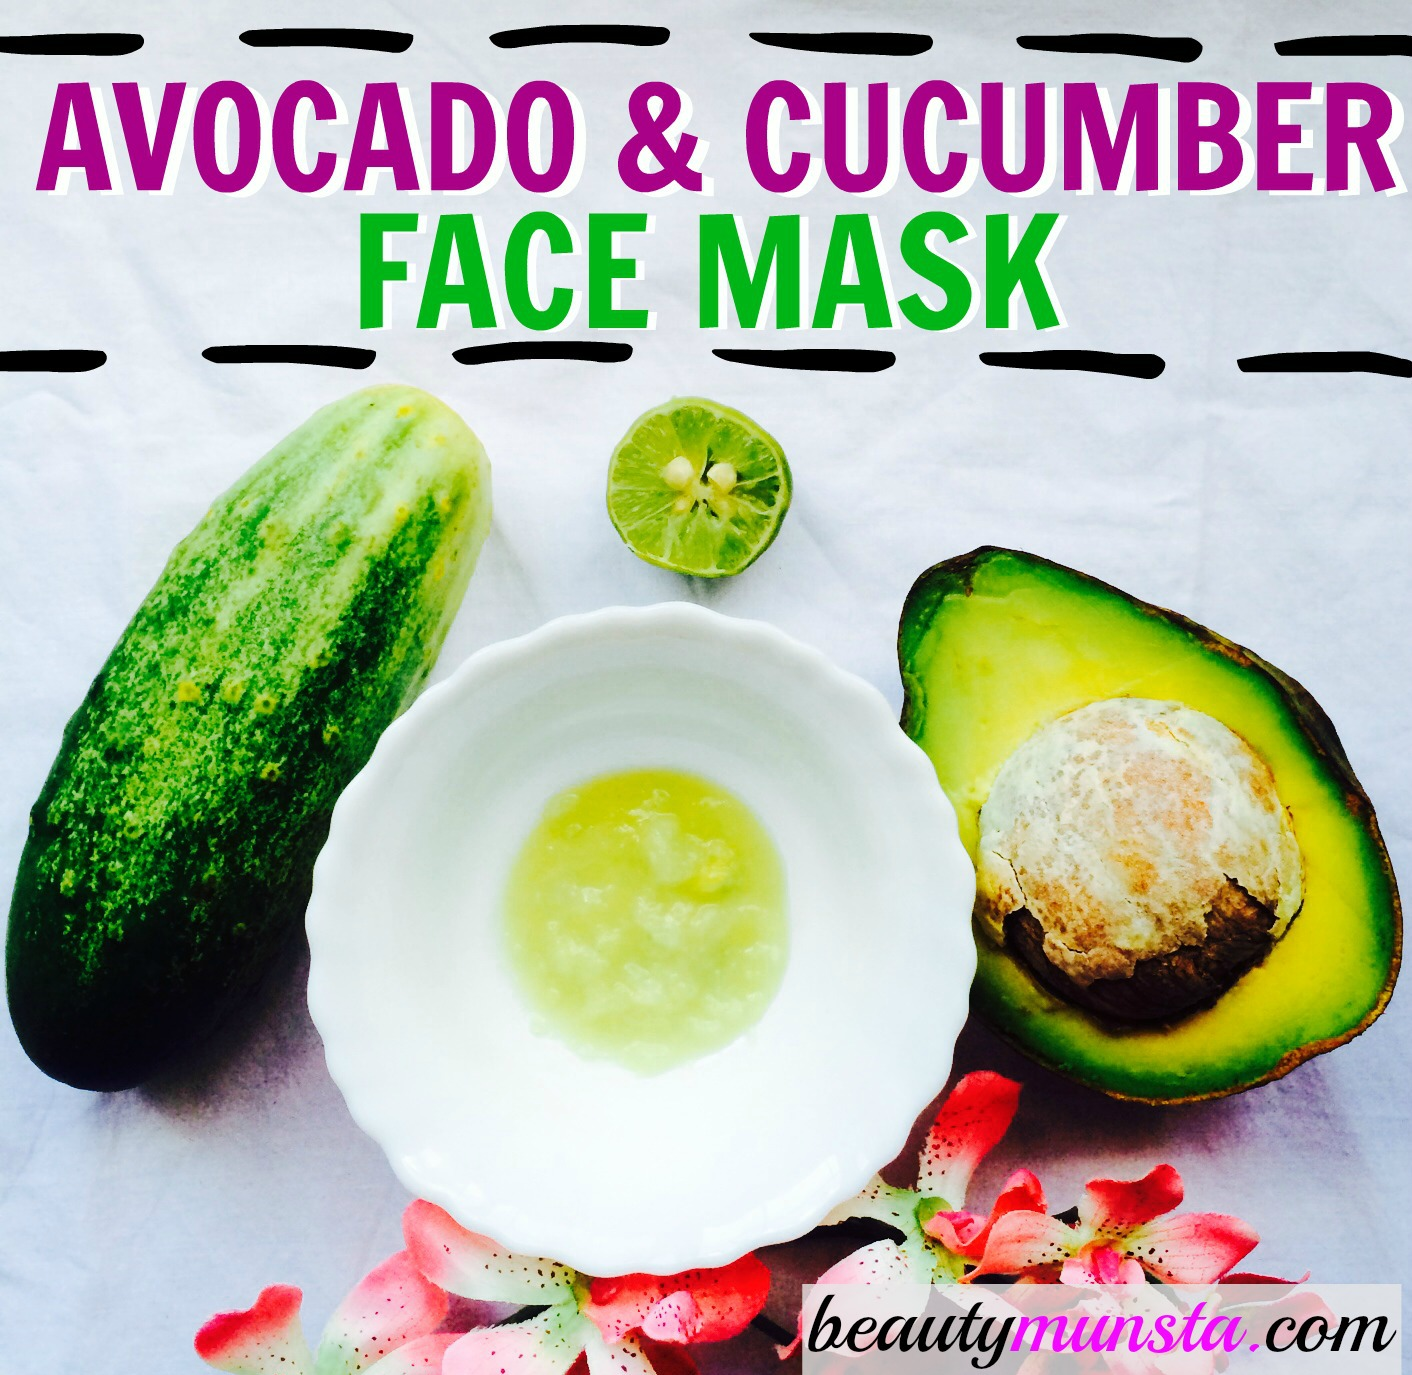 Combine avocado & cucumber to make a cooling, soothing & hydrating face mask